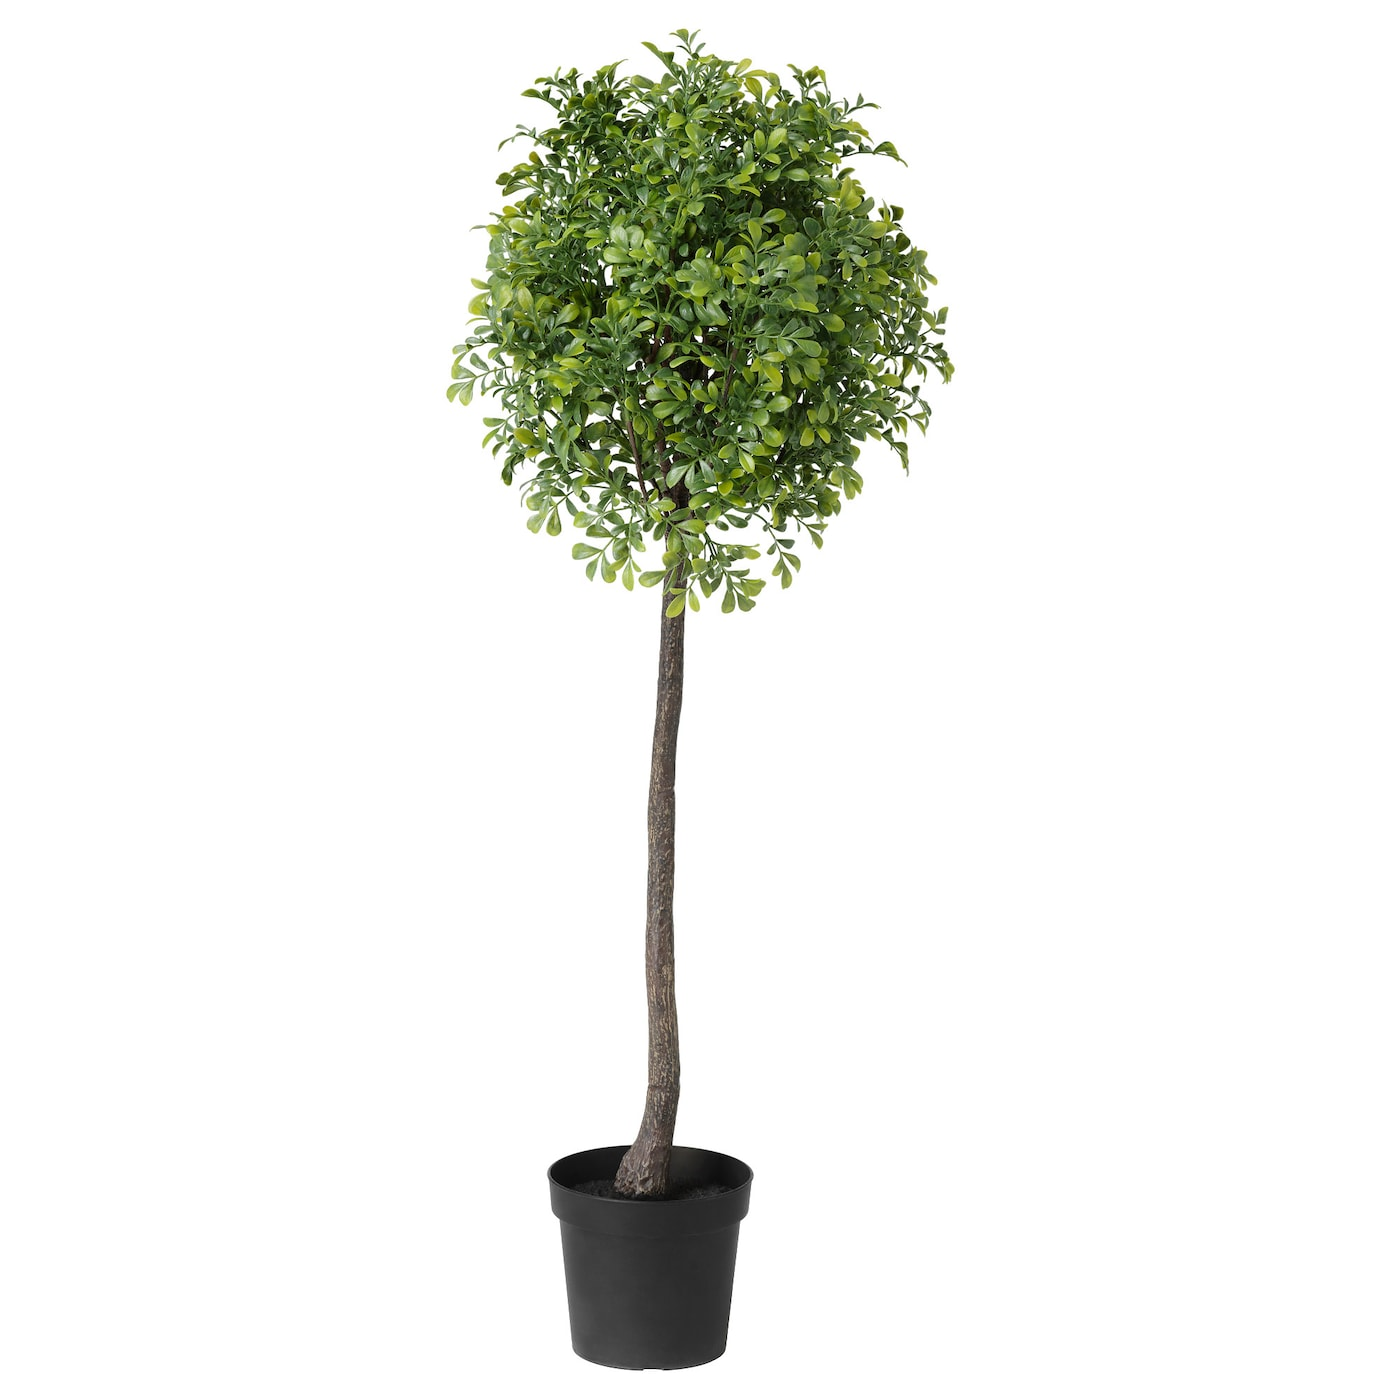 IKEA FEJKA artificial potted plant Suitable for both indoor and outdoor use.